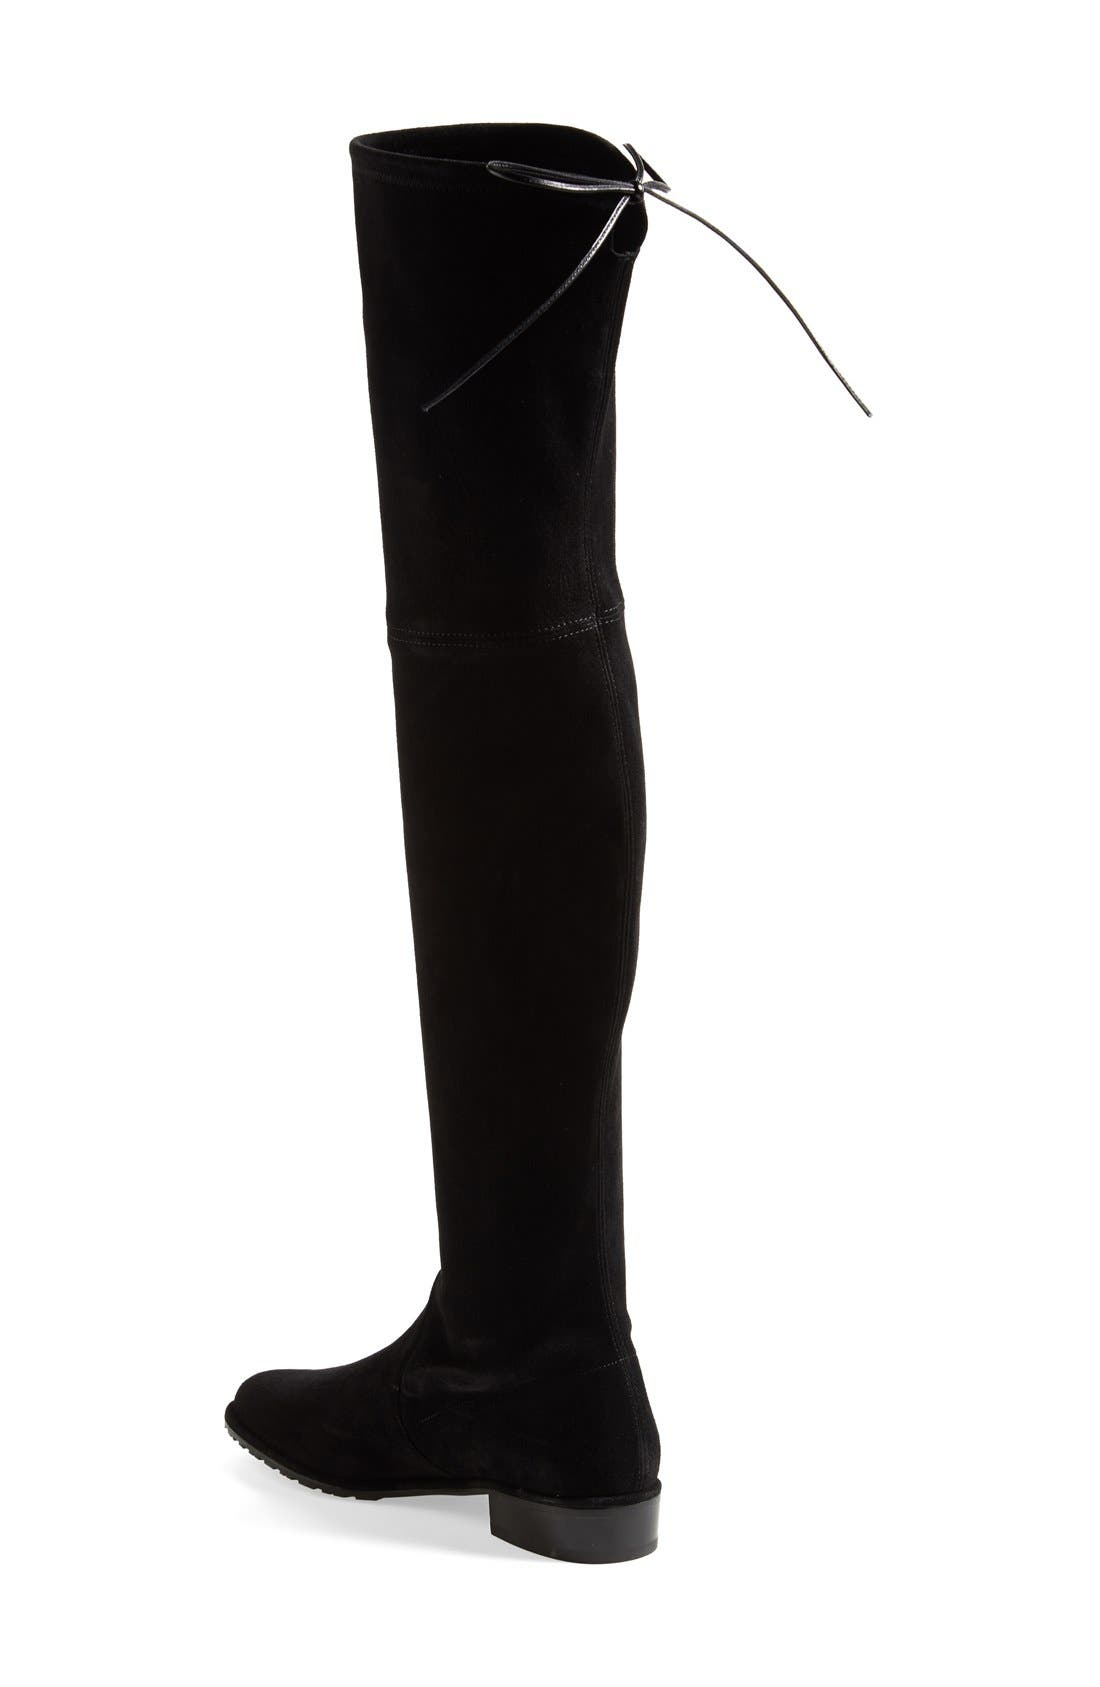 'Lowland' Over the Knee Boot,                             Alternate thumbnail 4, color,                             BLACK SUEDE